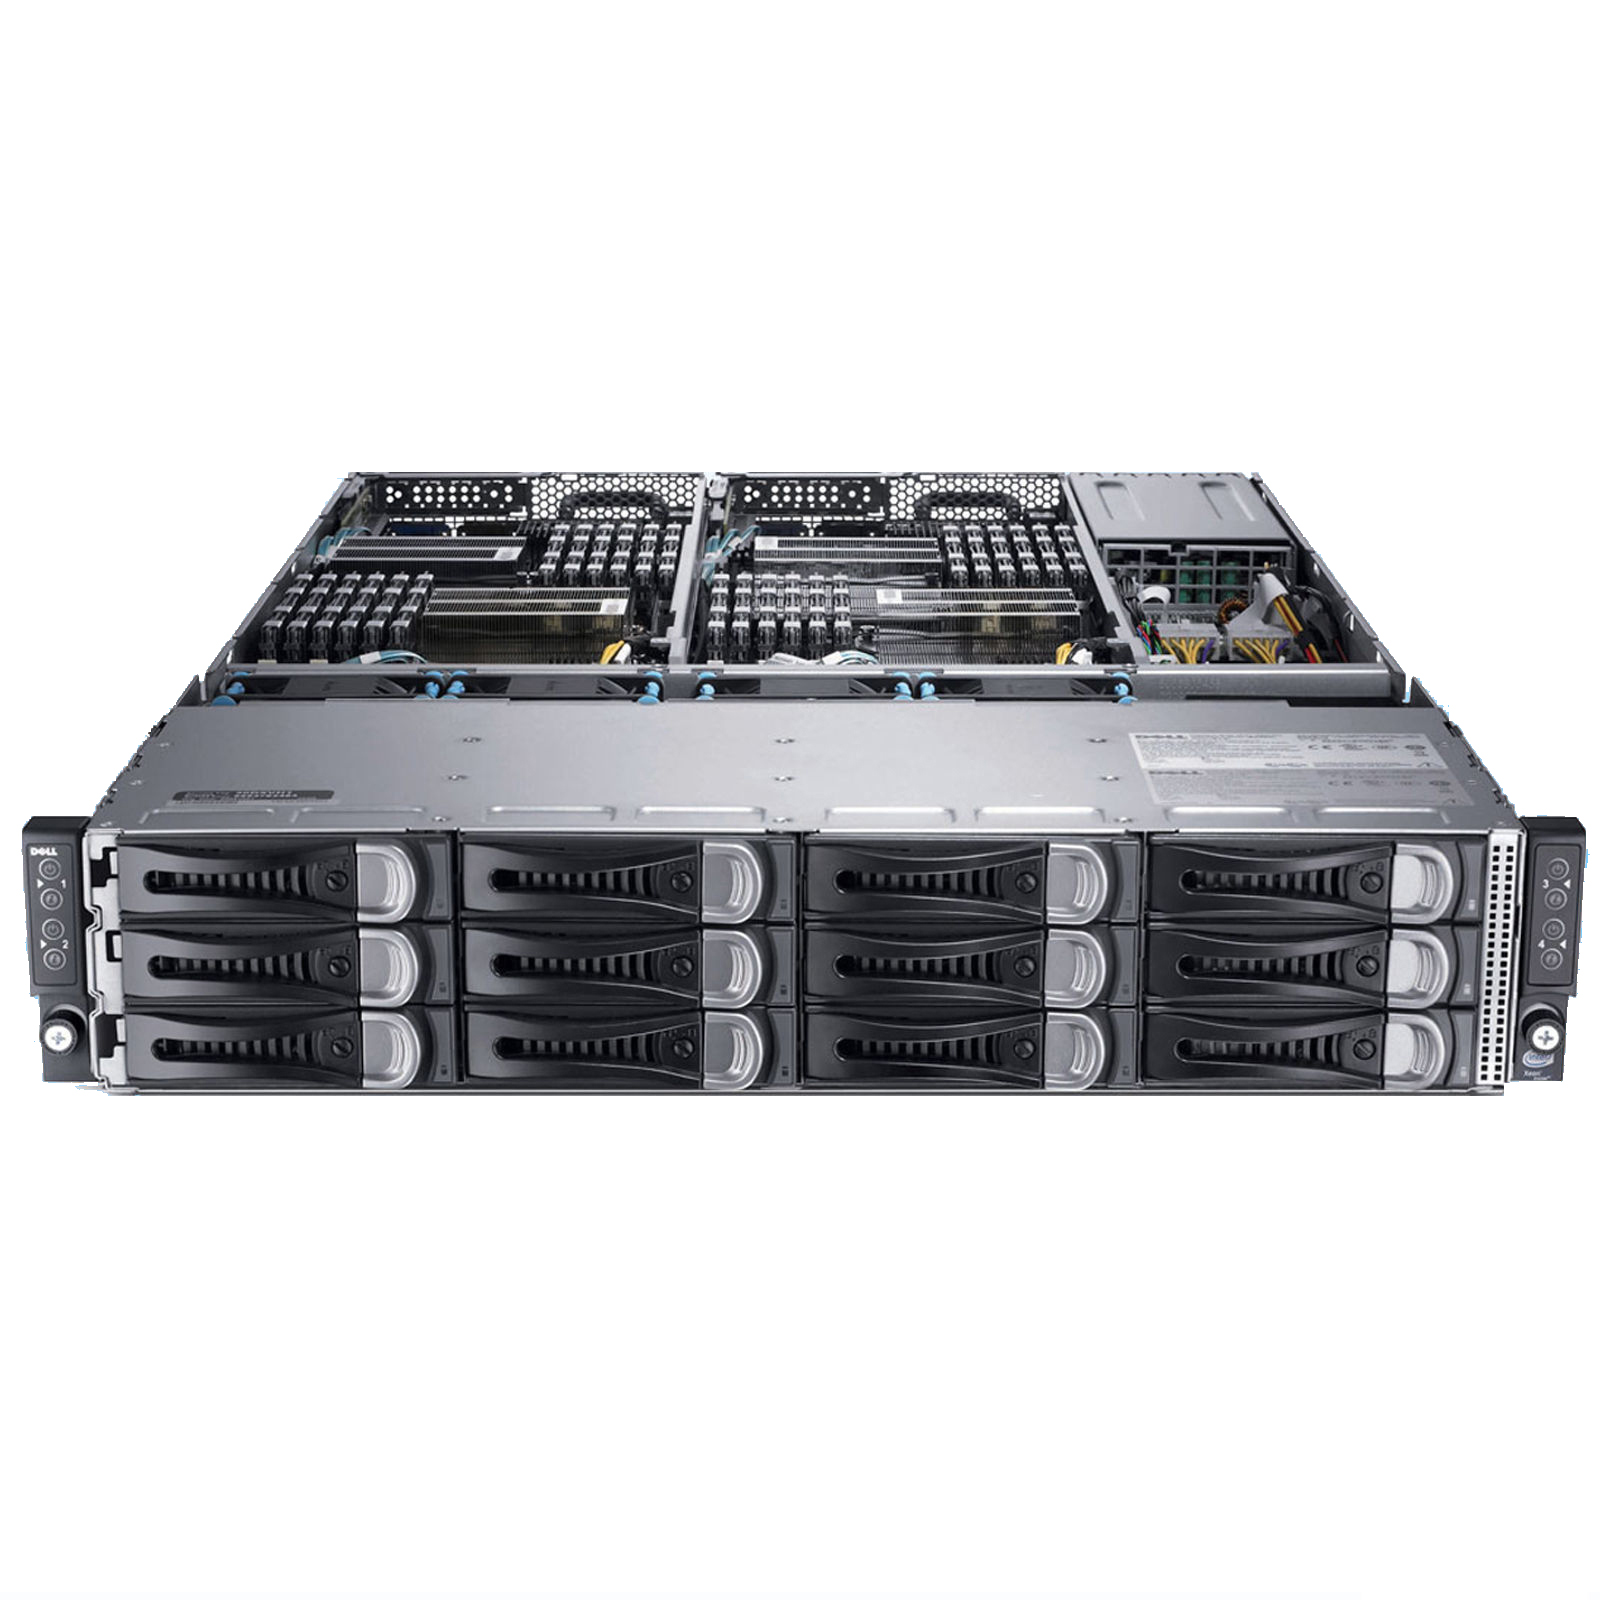 MÁY CHỦ DELL POWEREDGE C6220  E5-2660 V2